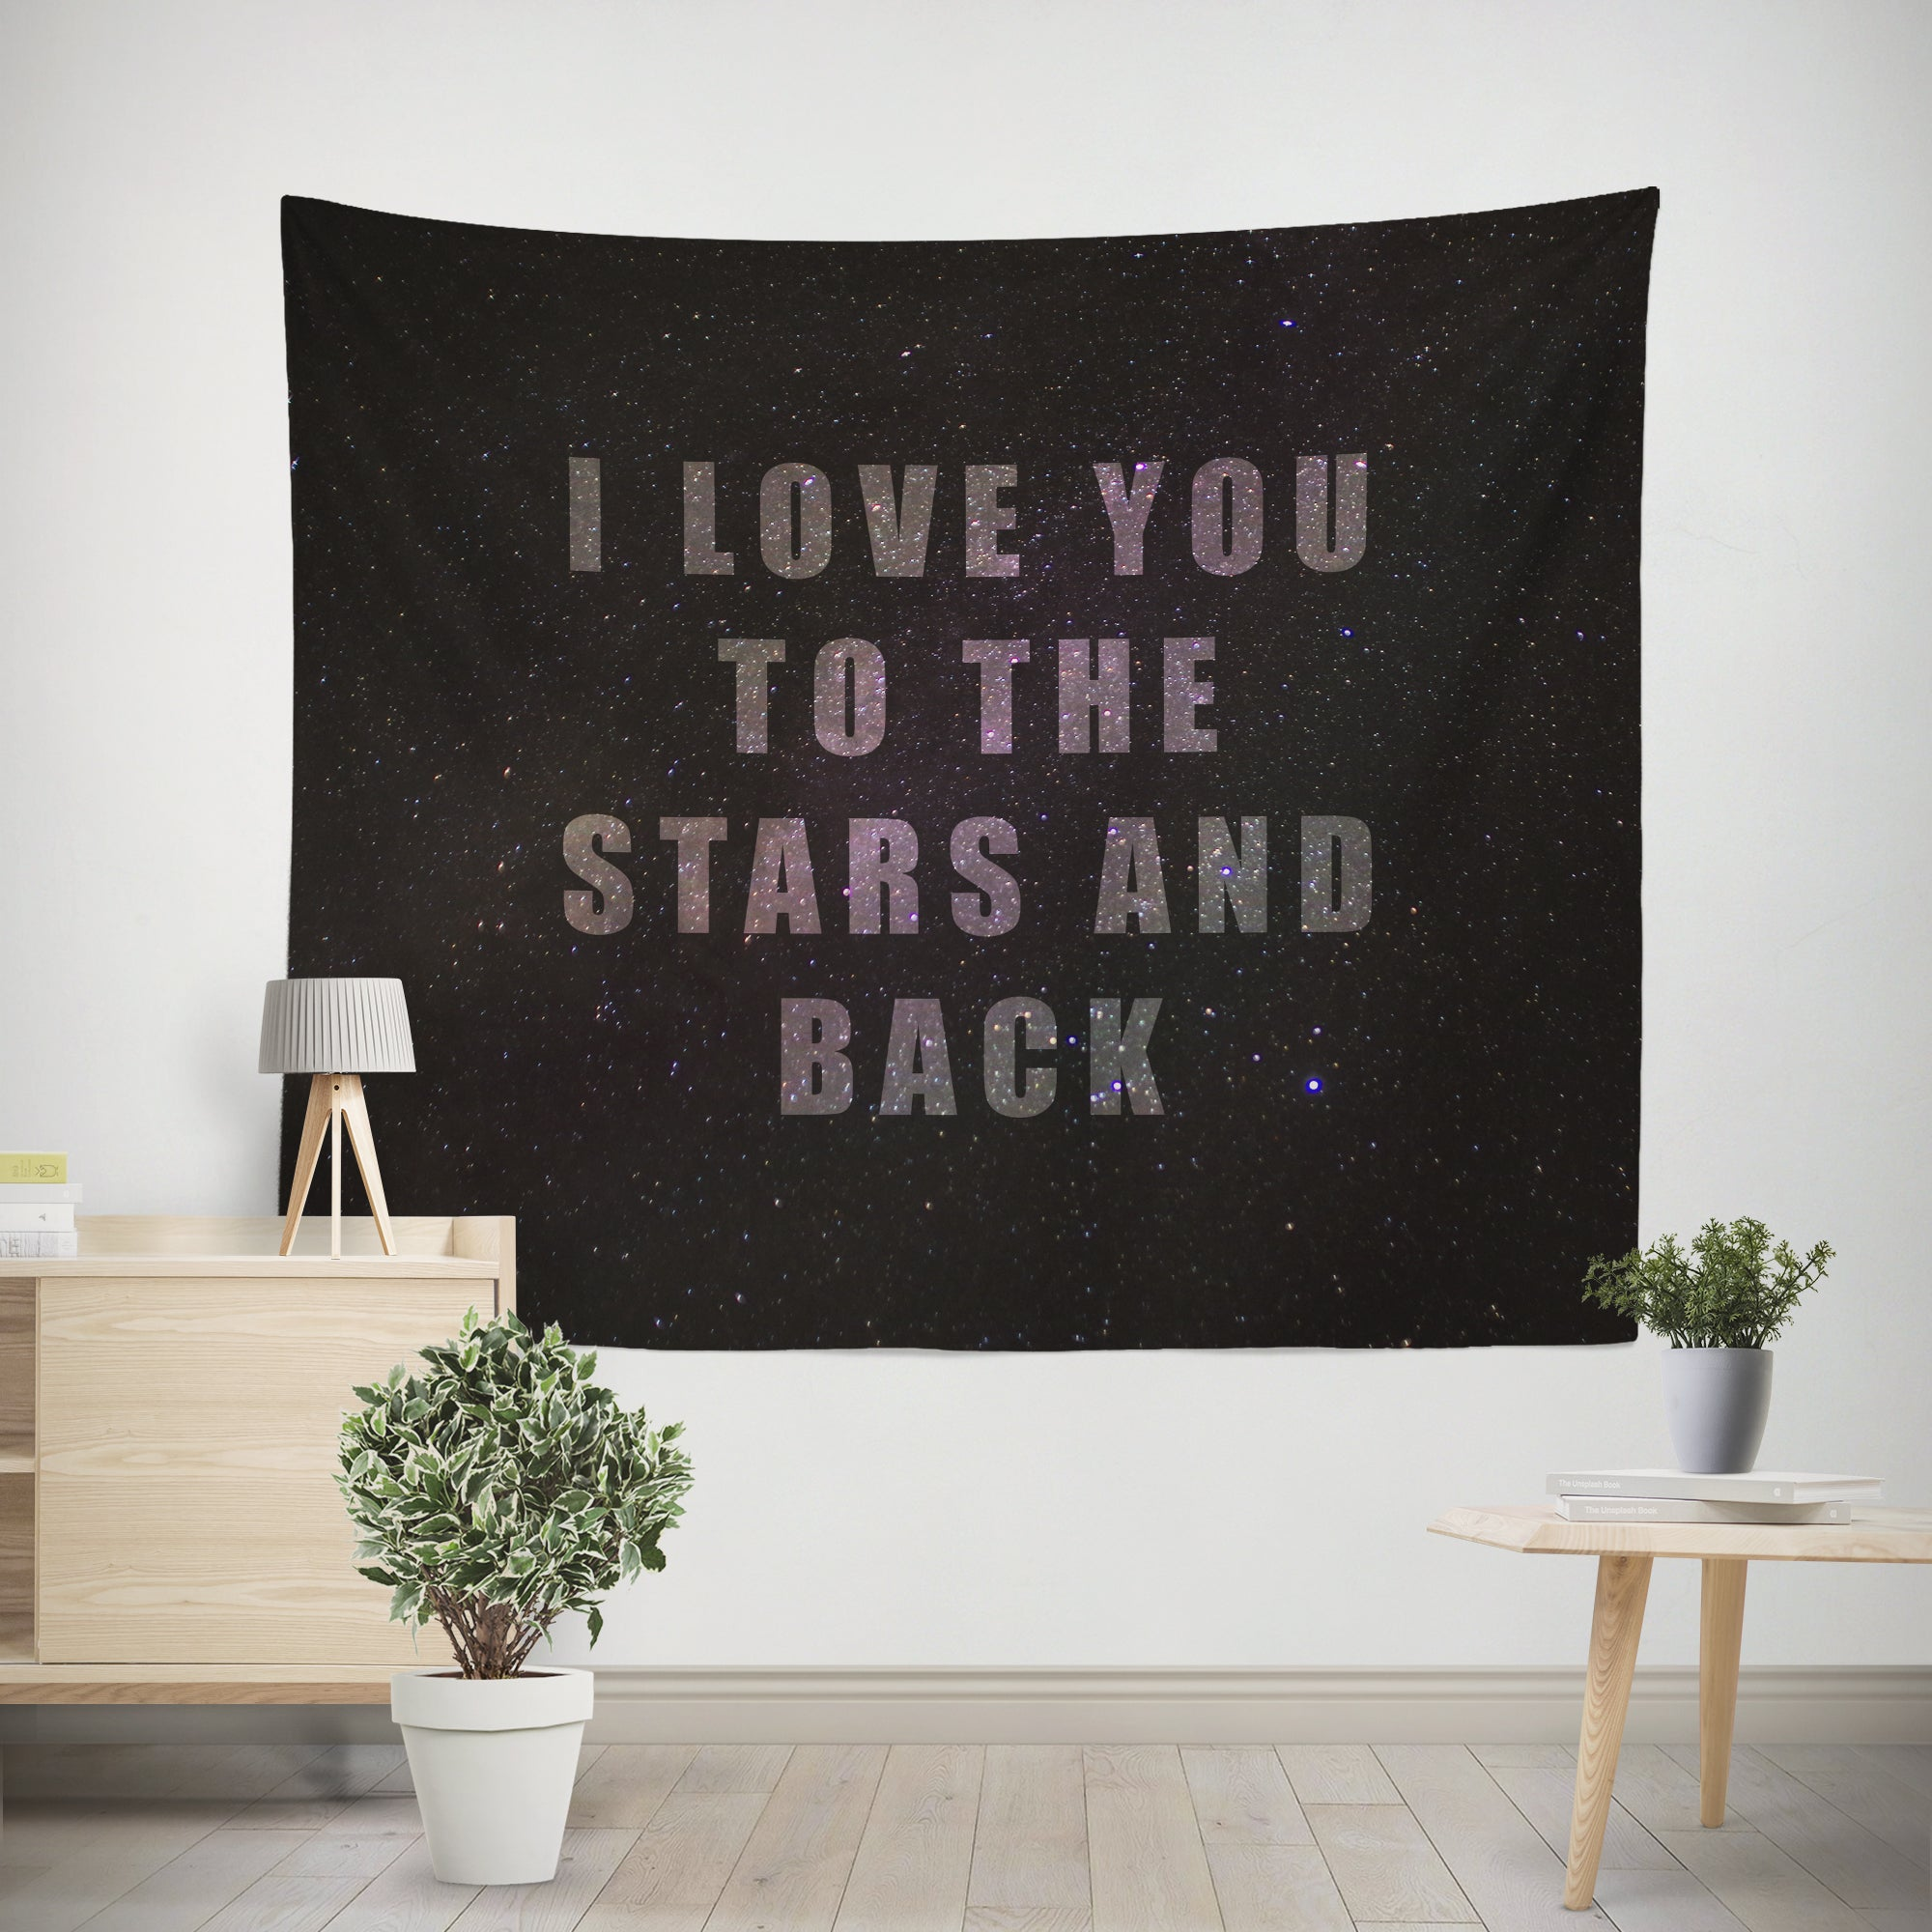 Love you to the Stars and Back Quote Microfiber Wall Tapestry